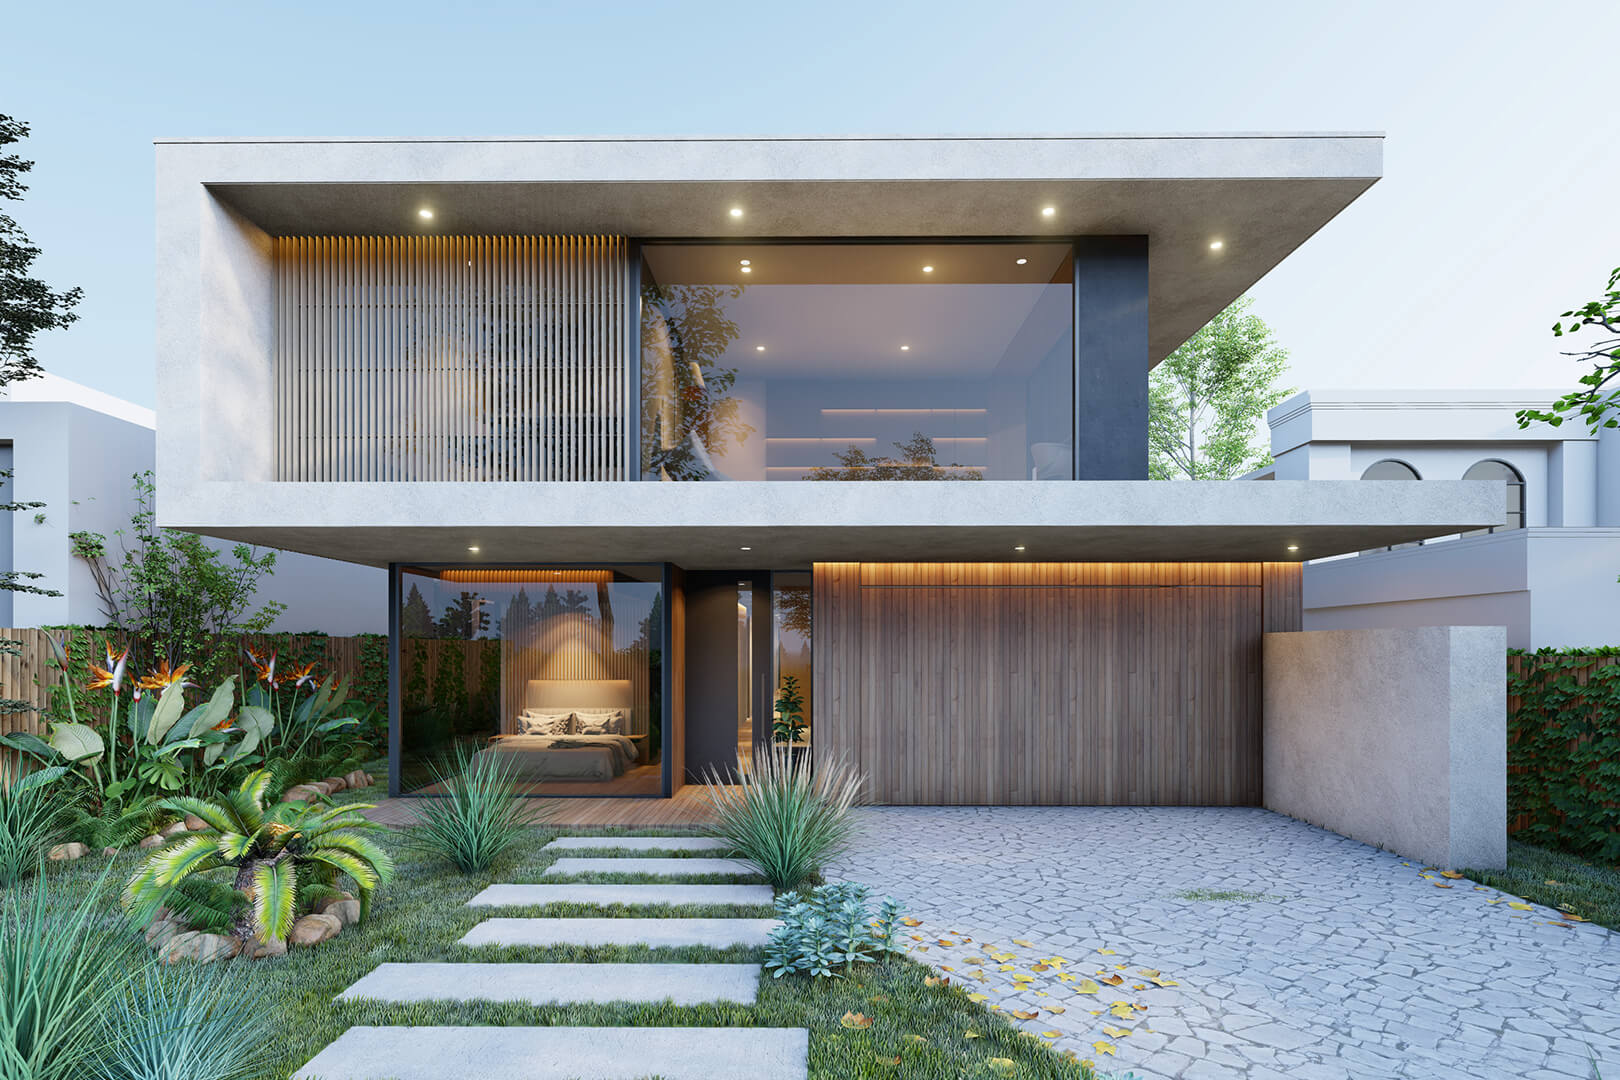 Deepdene Modern House minimalist Melbourne architecture designed by Sky Architect Studio. Features concrete material with timber look facade.